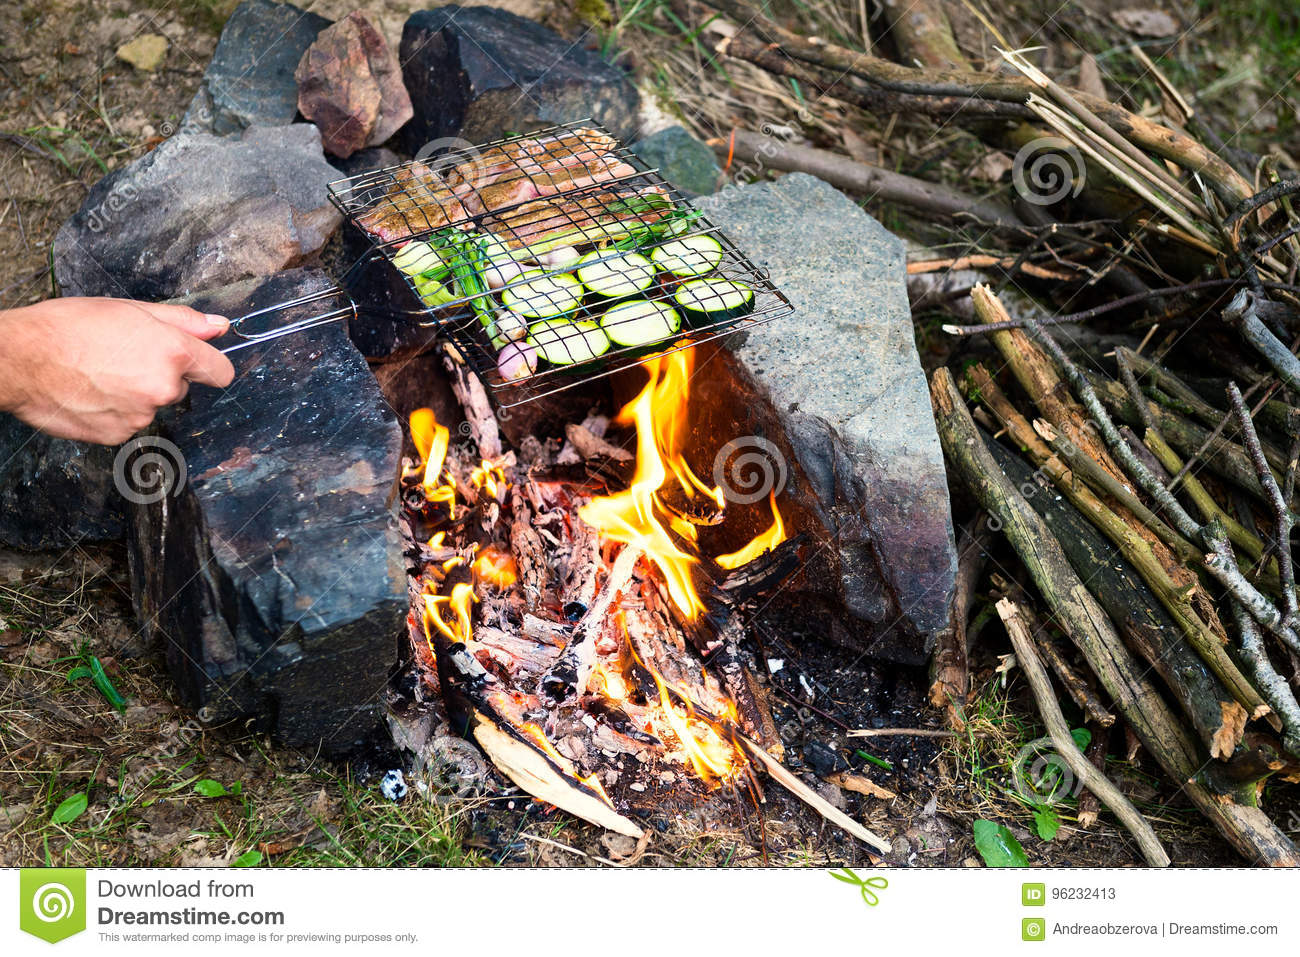 Man preparing dinner on campfire, adventure lifestyle camping vacation